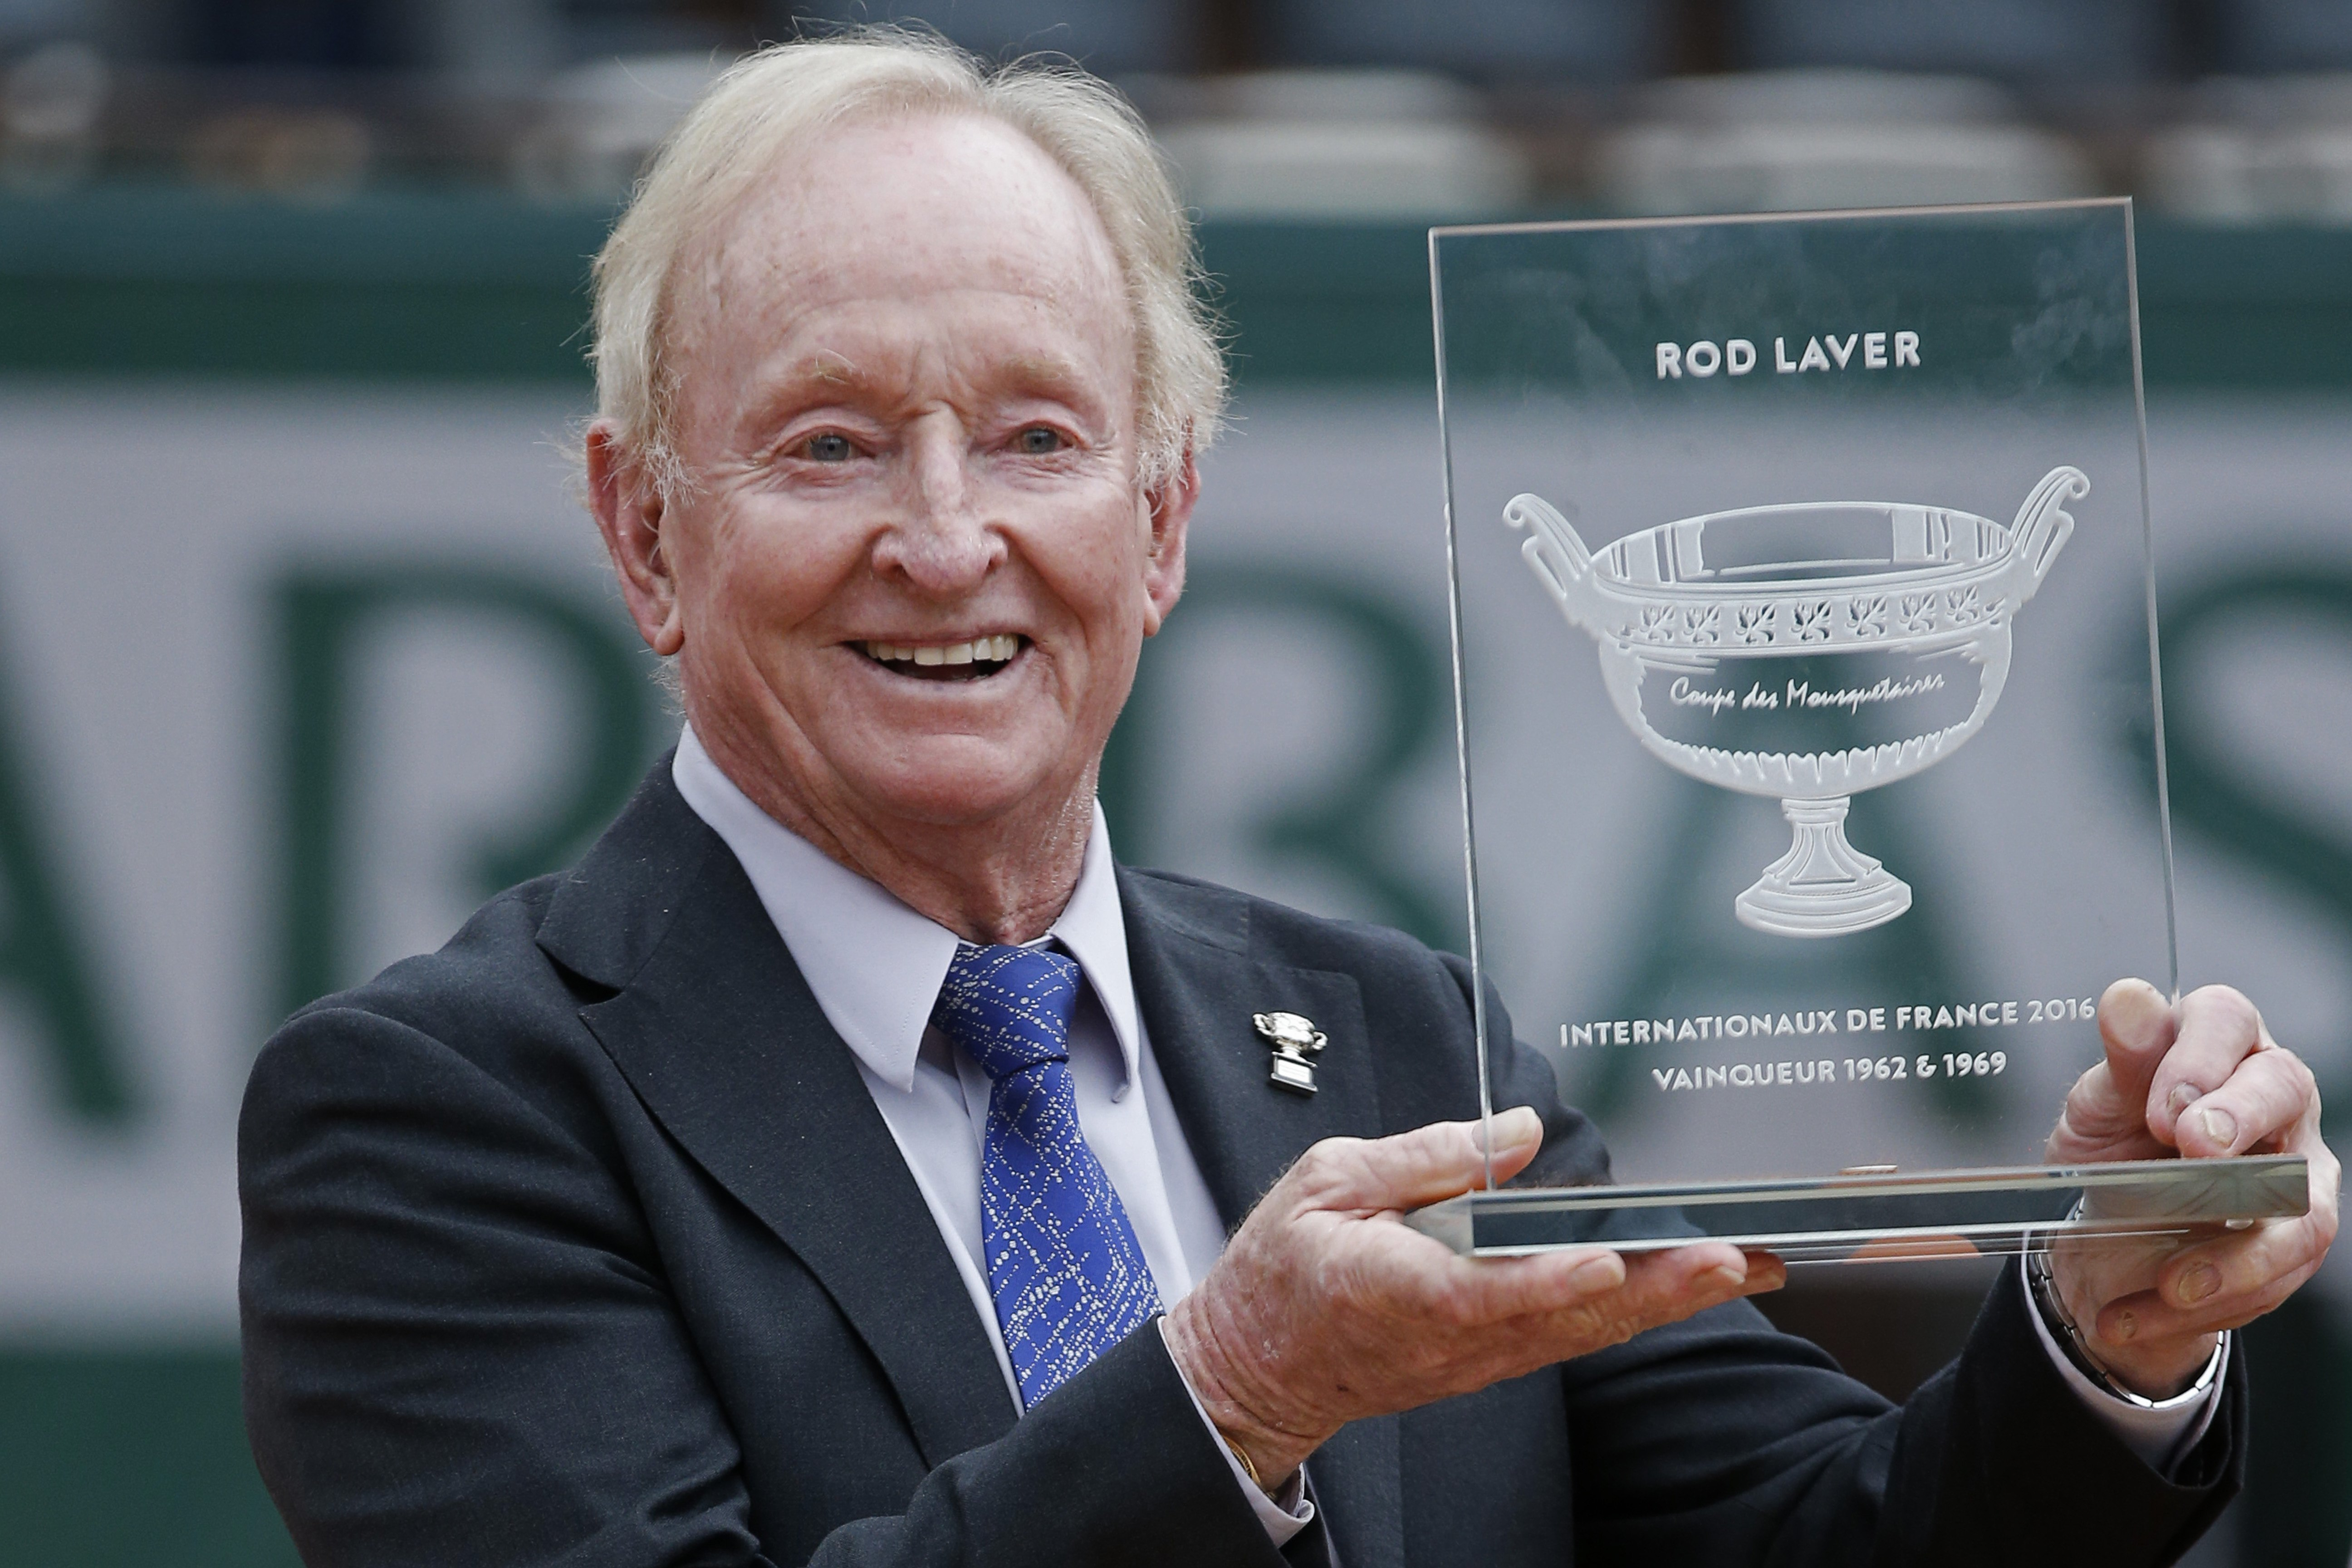 FILE - In this Friday, June 3, 2016 file photo former Australian tennis champion Rod Laver holds an award he received from the French tennis Federation during the French Open tennis tournament at the Roland Garros stadium in Paris, France. (AP Photo/Alast